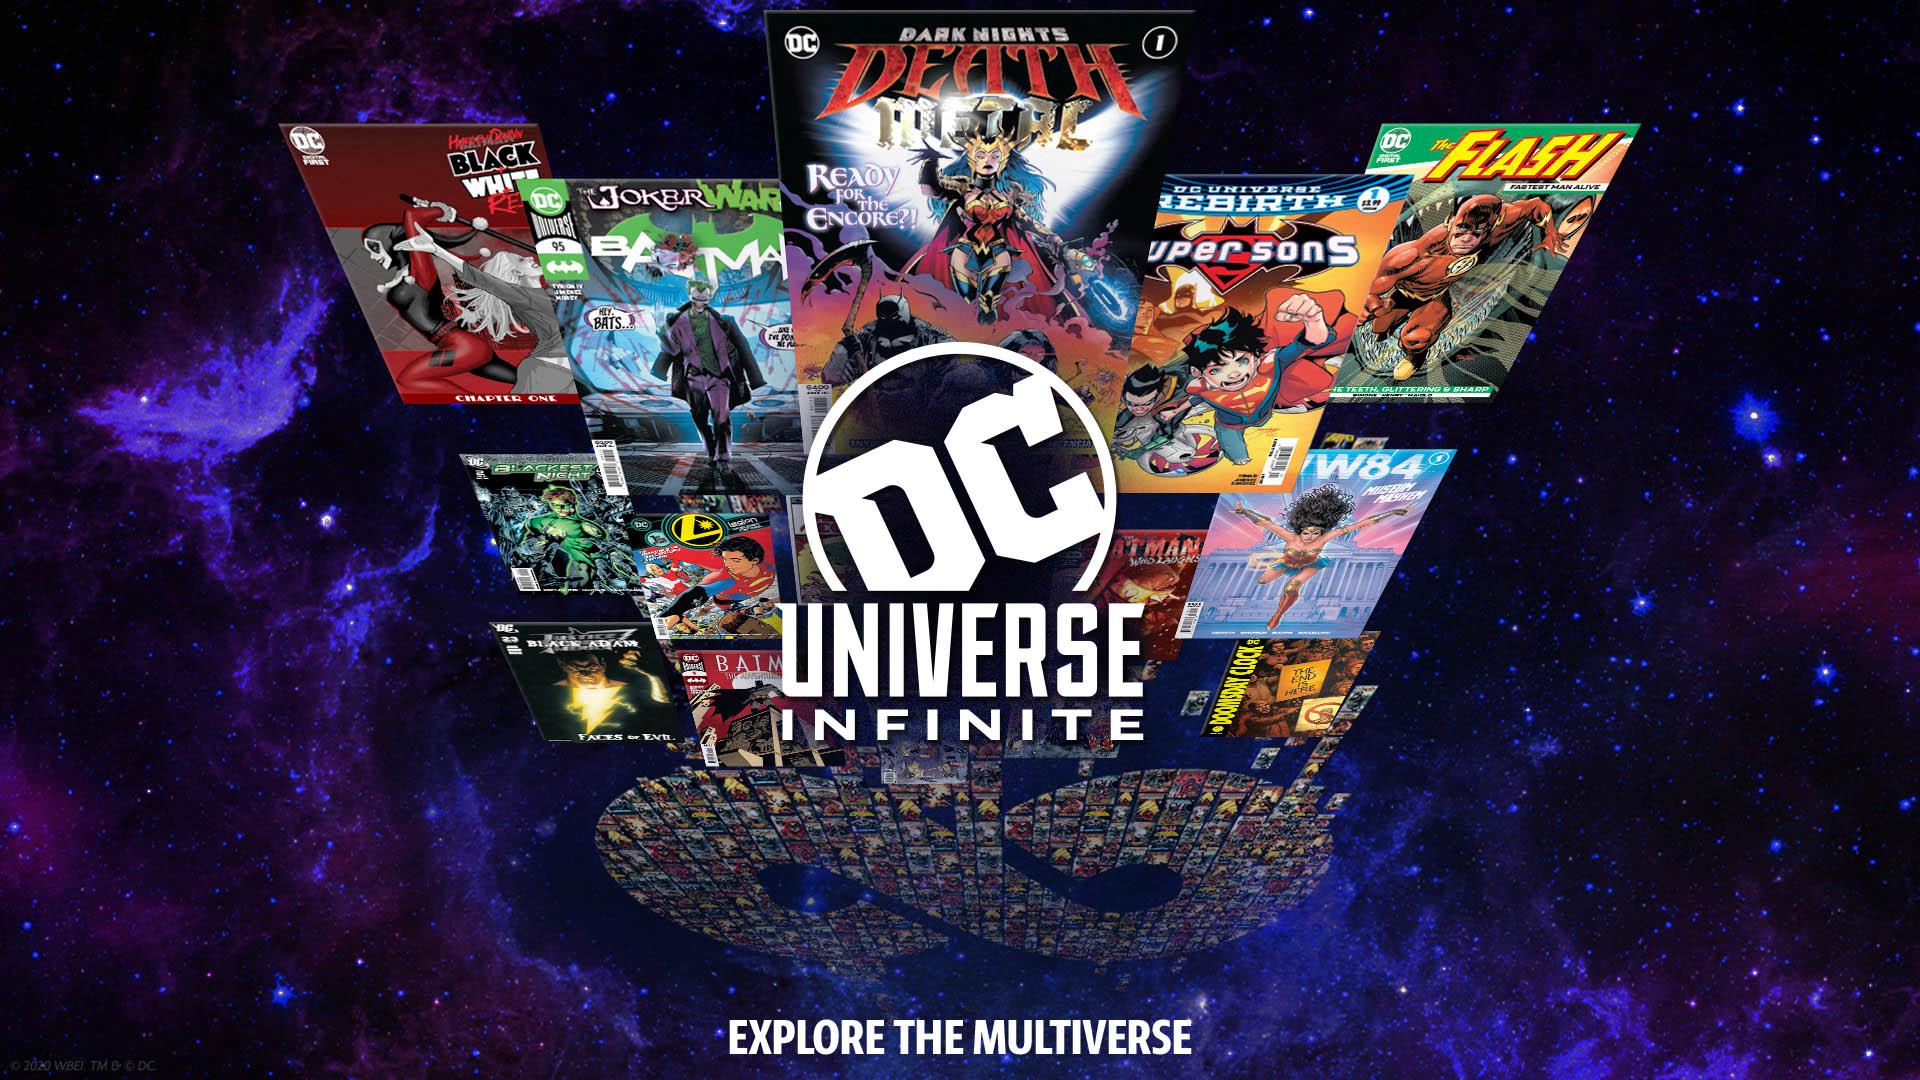 DC UNIVERSE TRANSFORMS INTO DC UNIVERSE INFINITE, THE ULTIMATE COMIC BOOK SUBSCRIPTION SERVICE